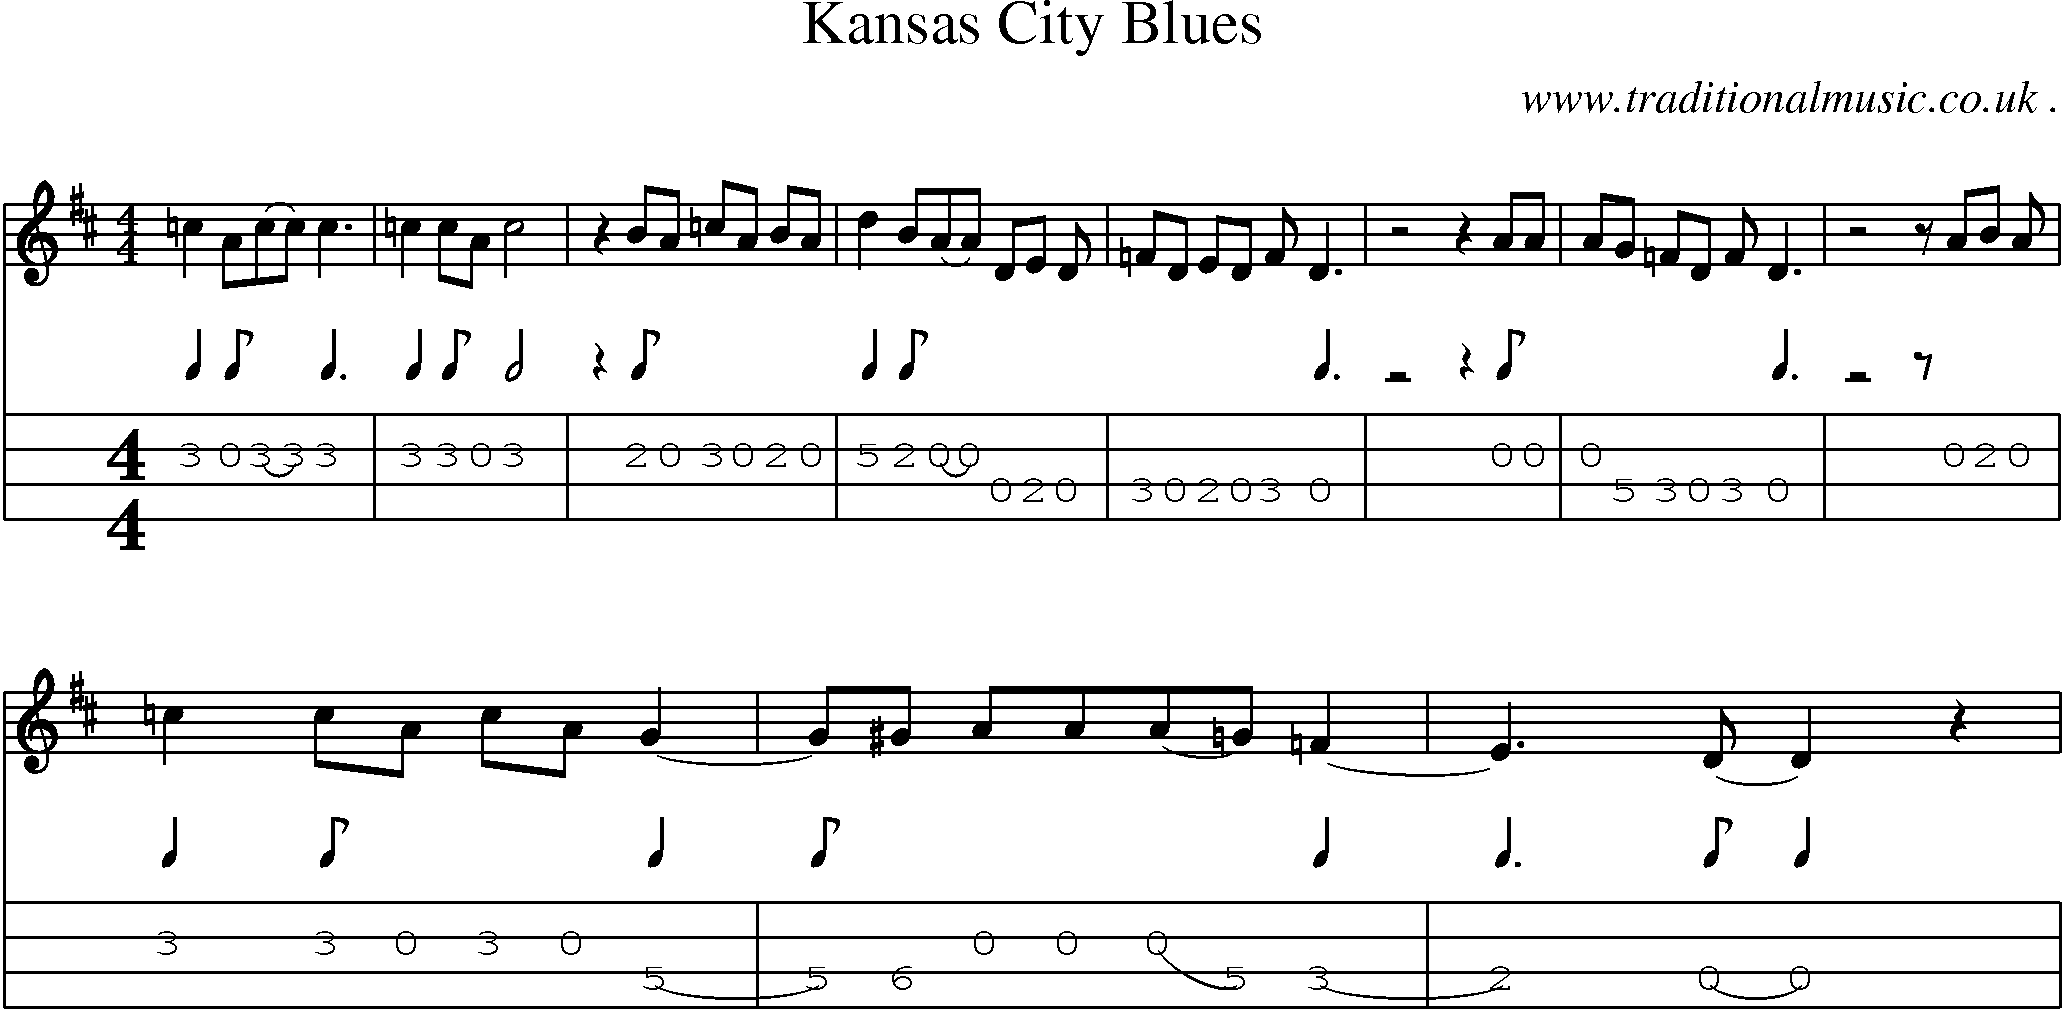 American Old-time music, Scores and Tabs for Mandolin - Kansas City Blues